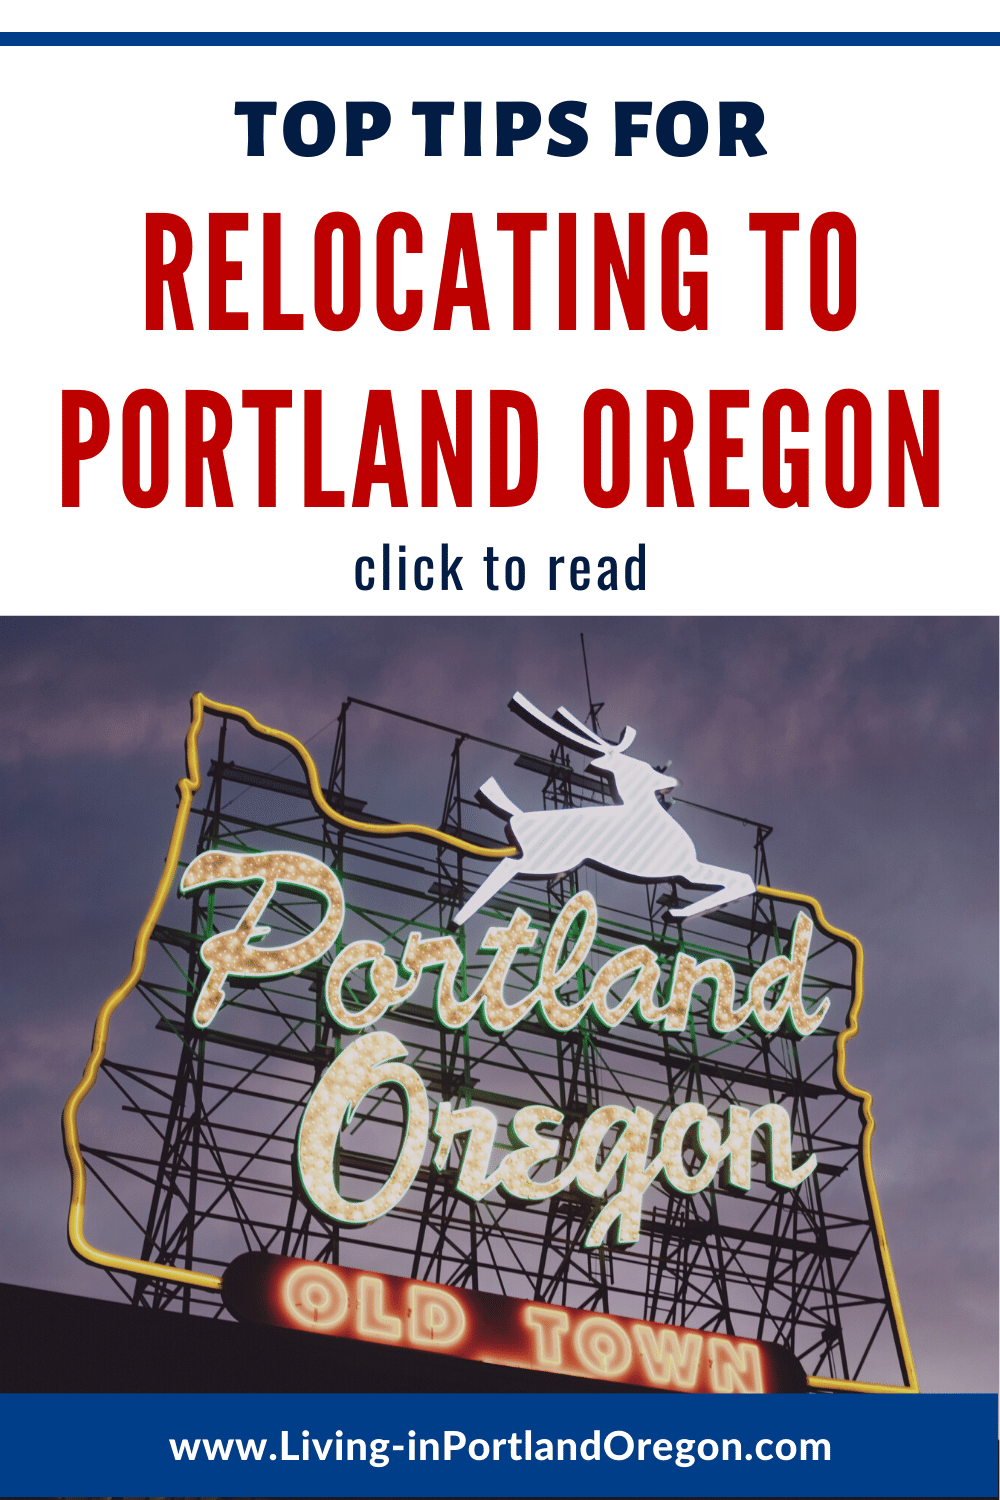 Top 5 Relocation Tips for Moving to Portland Oregon pins (1)